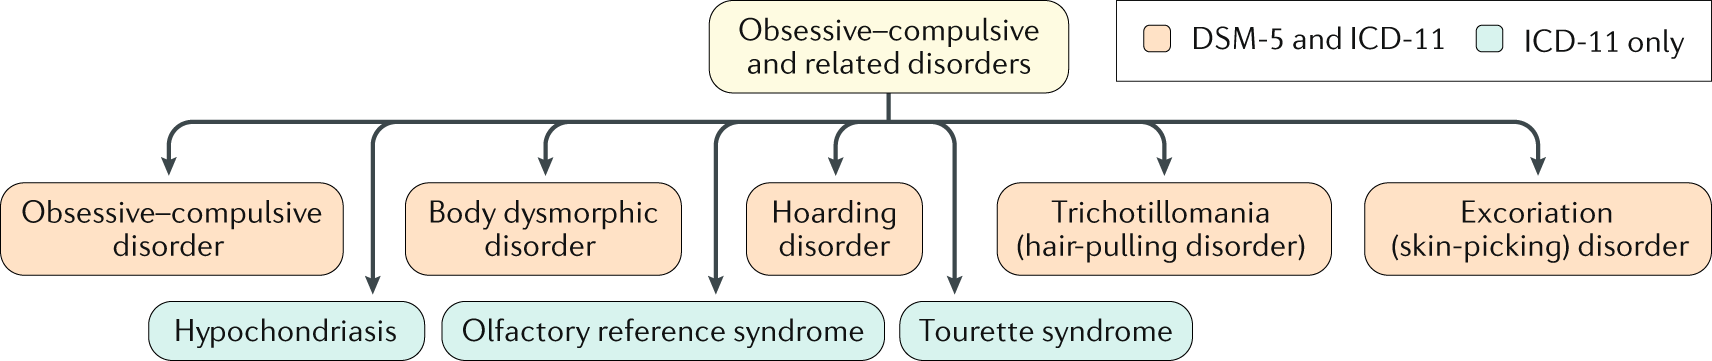 Obsessive–compulsive disorder | Nature Reviews Disease Primers